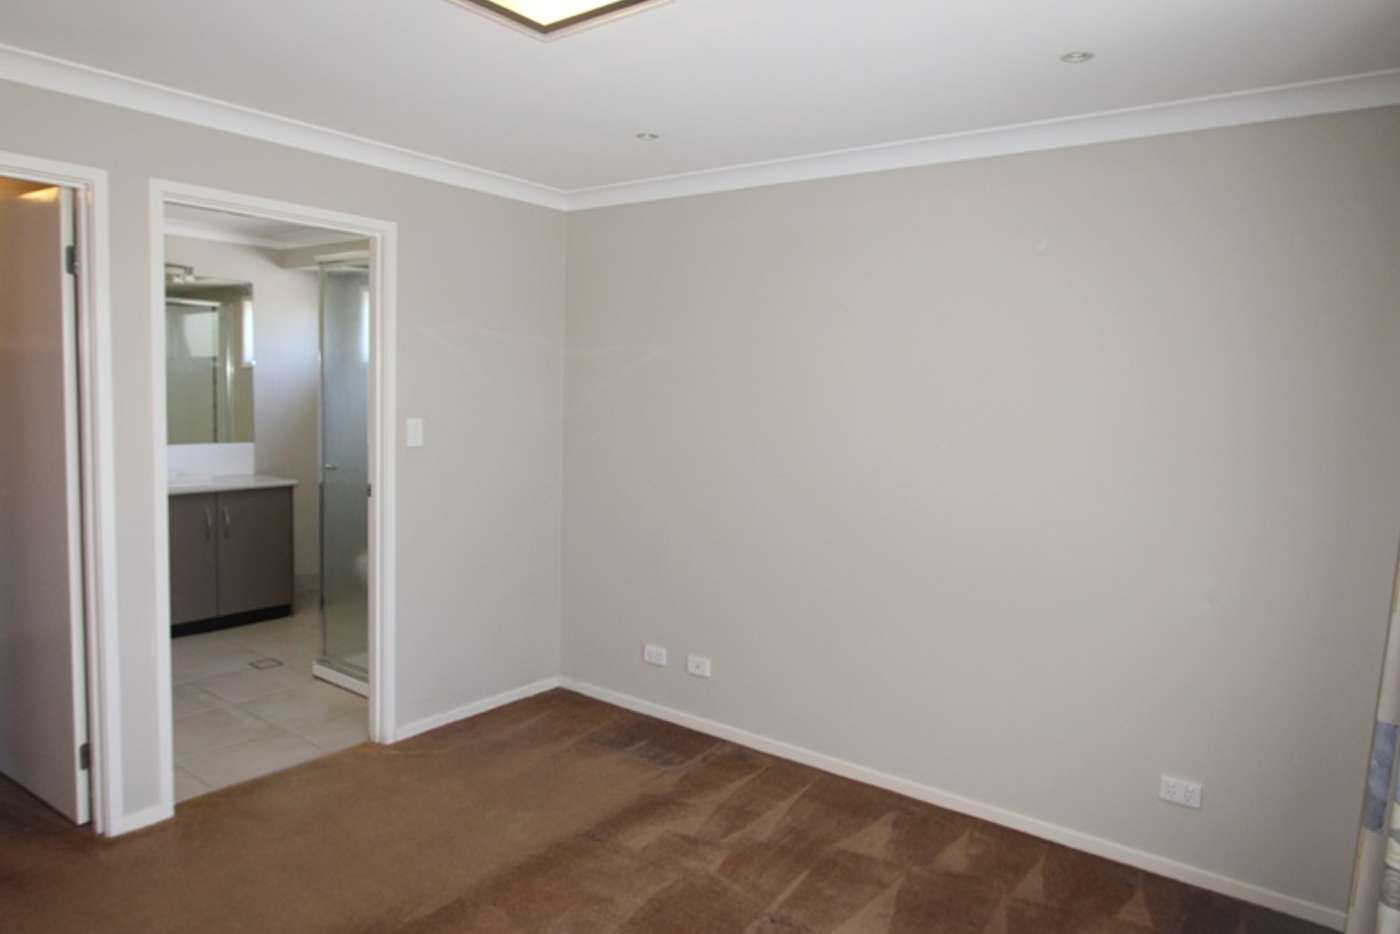 Sixth view of Homely house listing, 121 Raye Street, Tolland NSW 2650